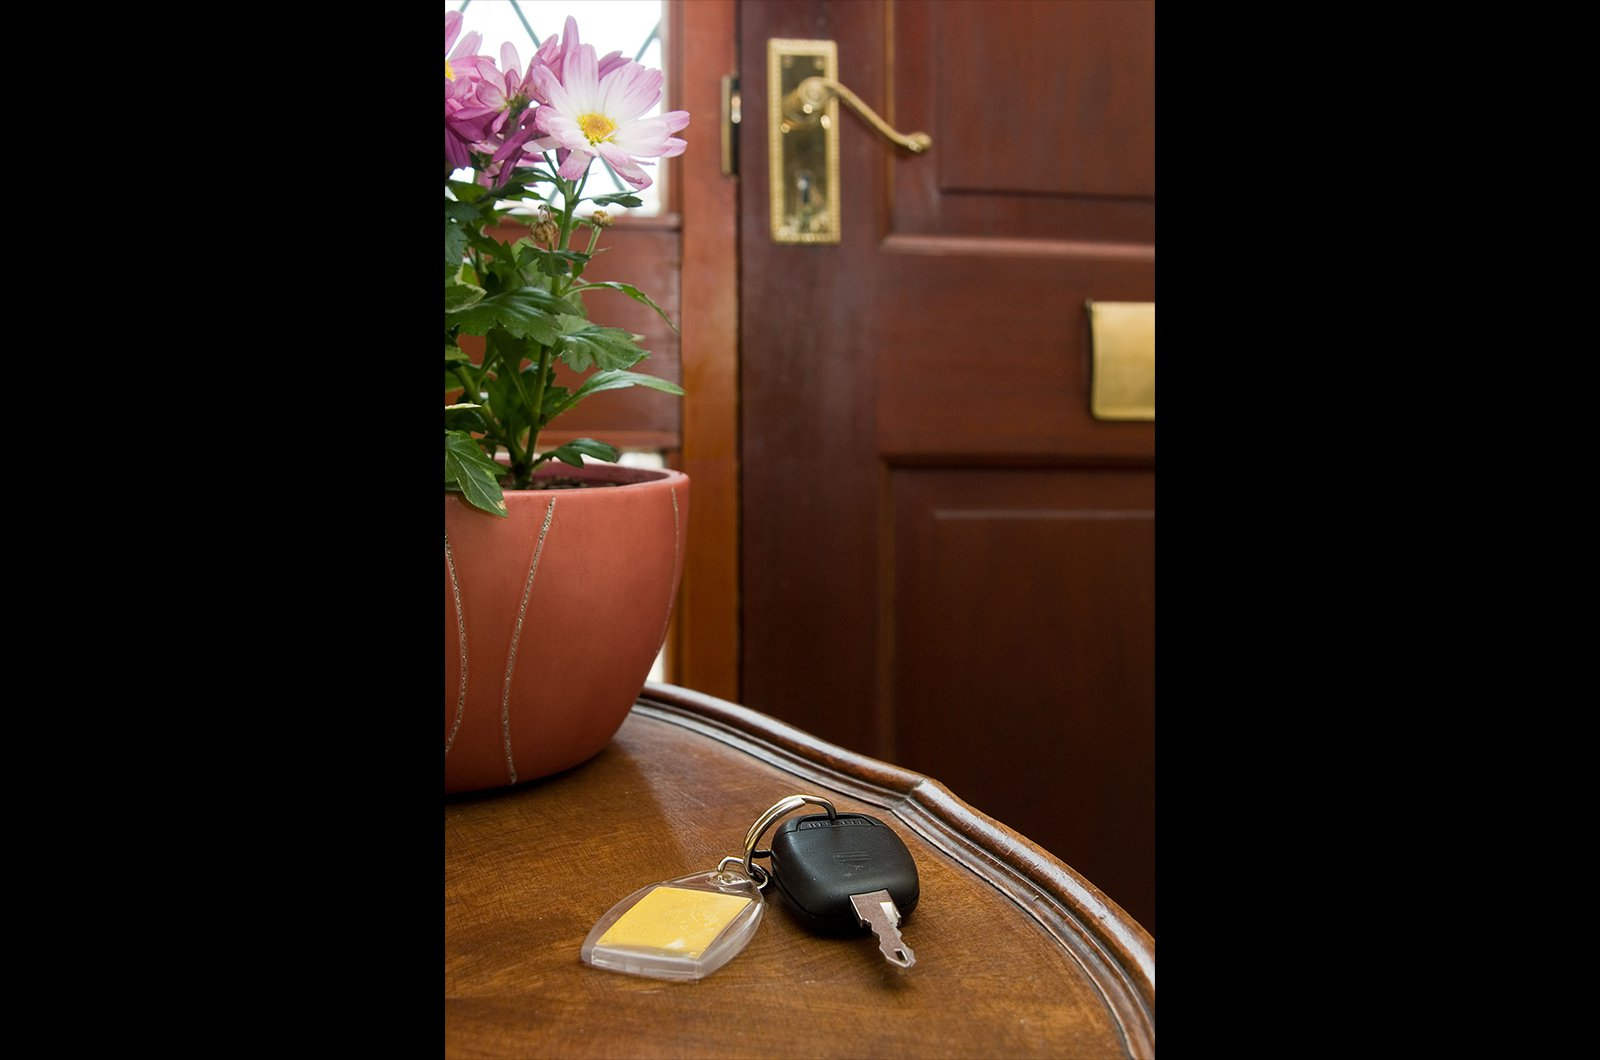 2. Keep your keys safe at home